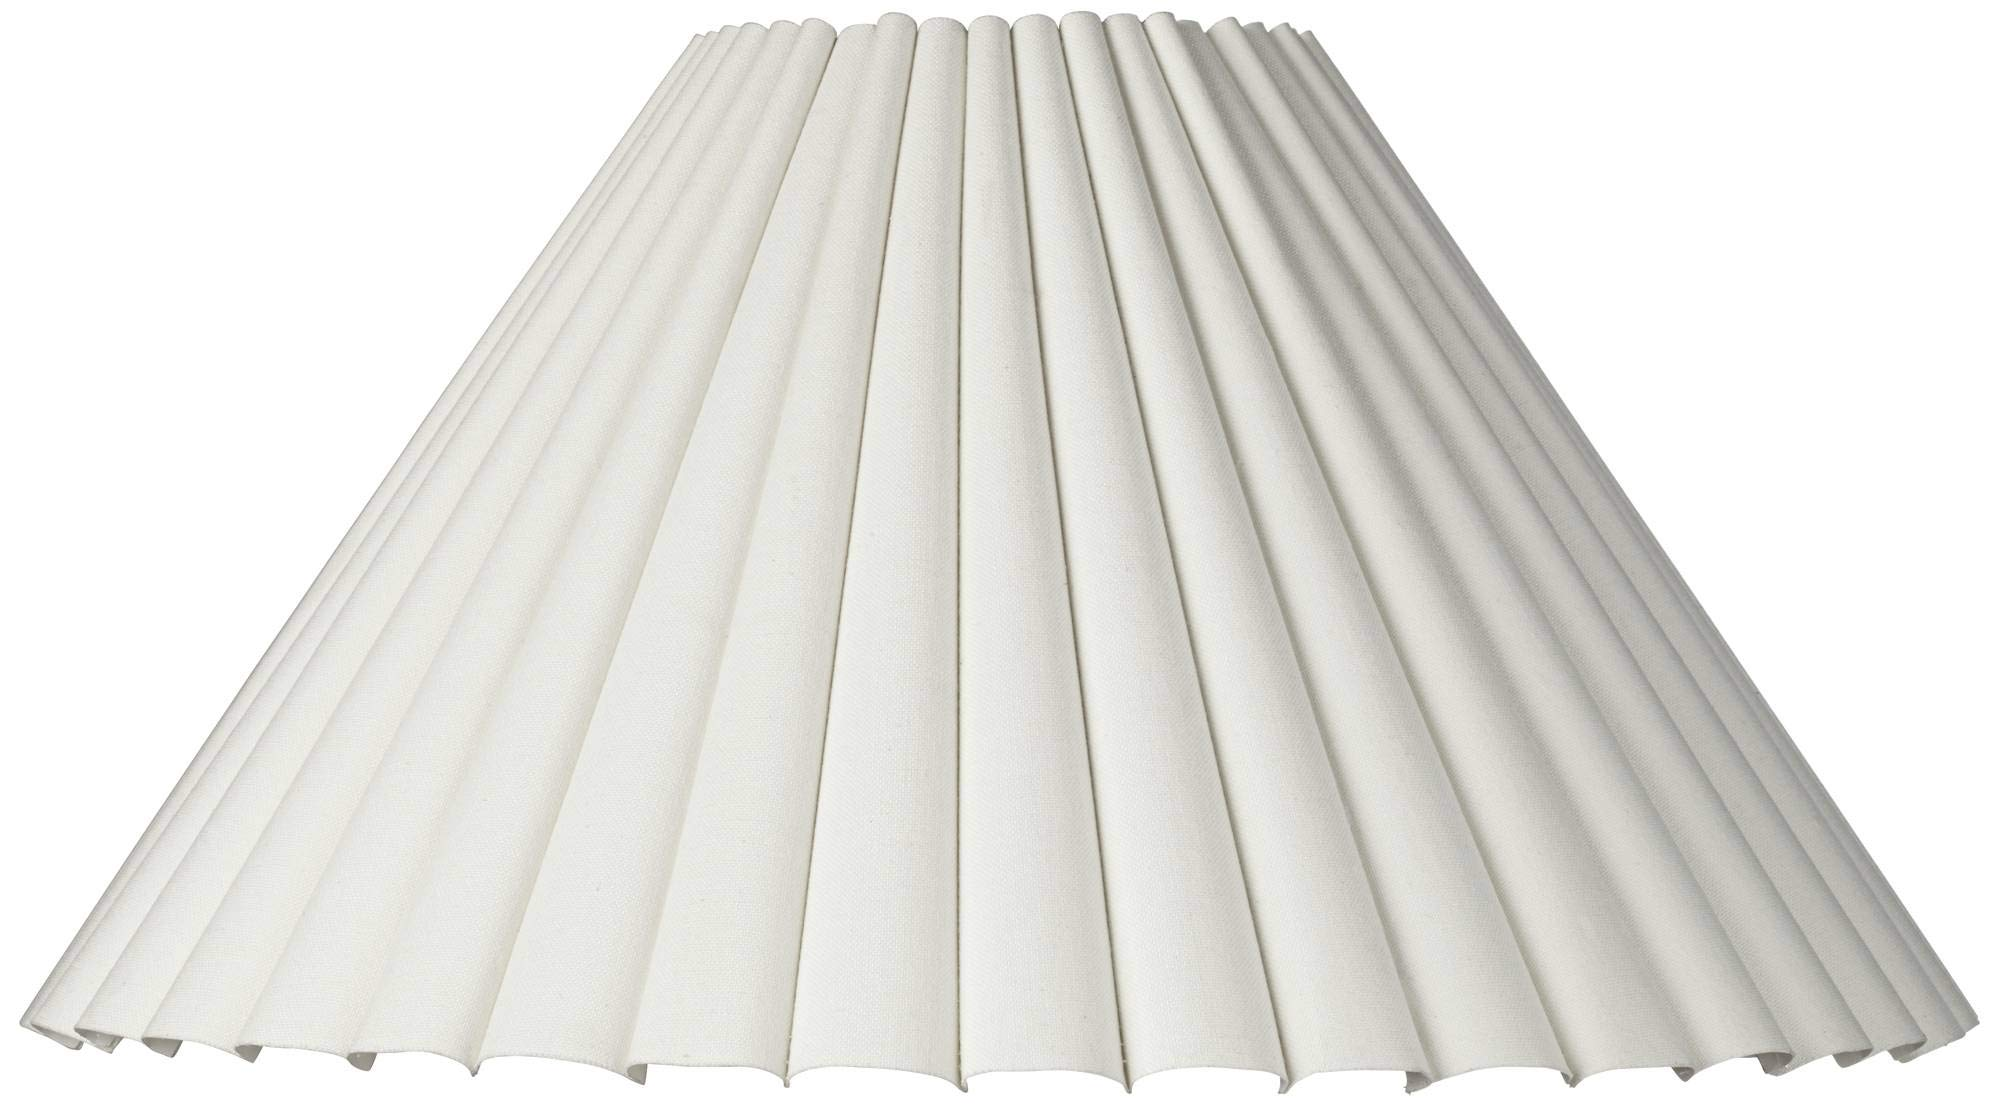 Box Pleat Lamp Shade 7x20.5x12.5 (Spider) - Brentwood